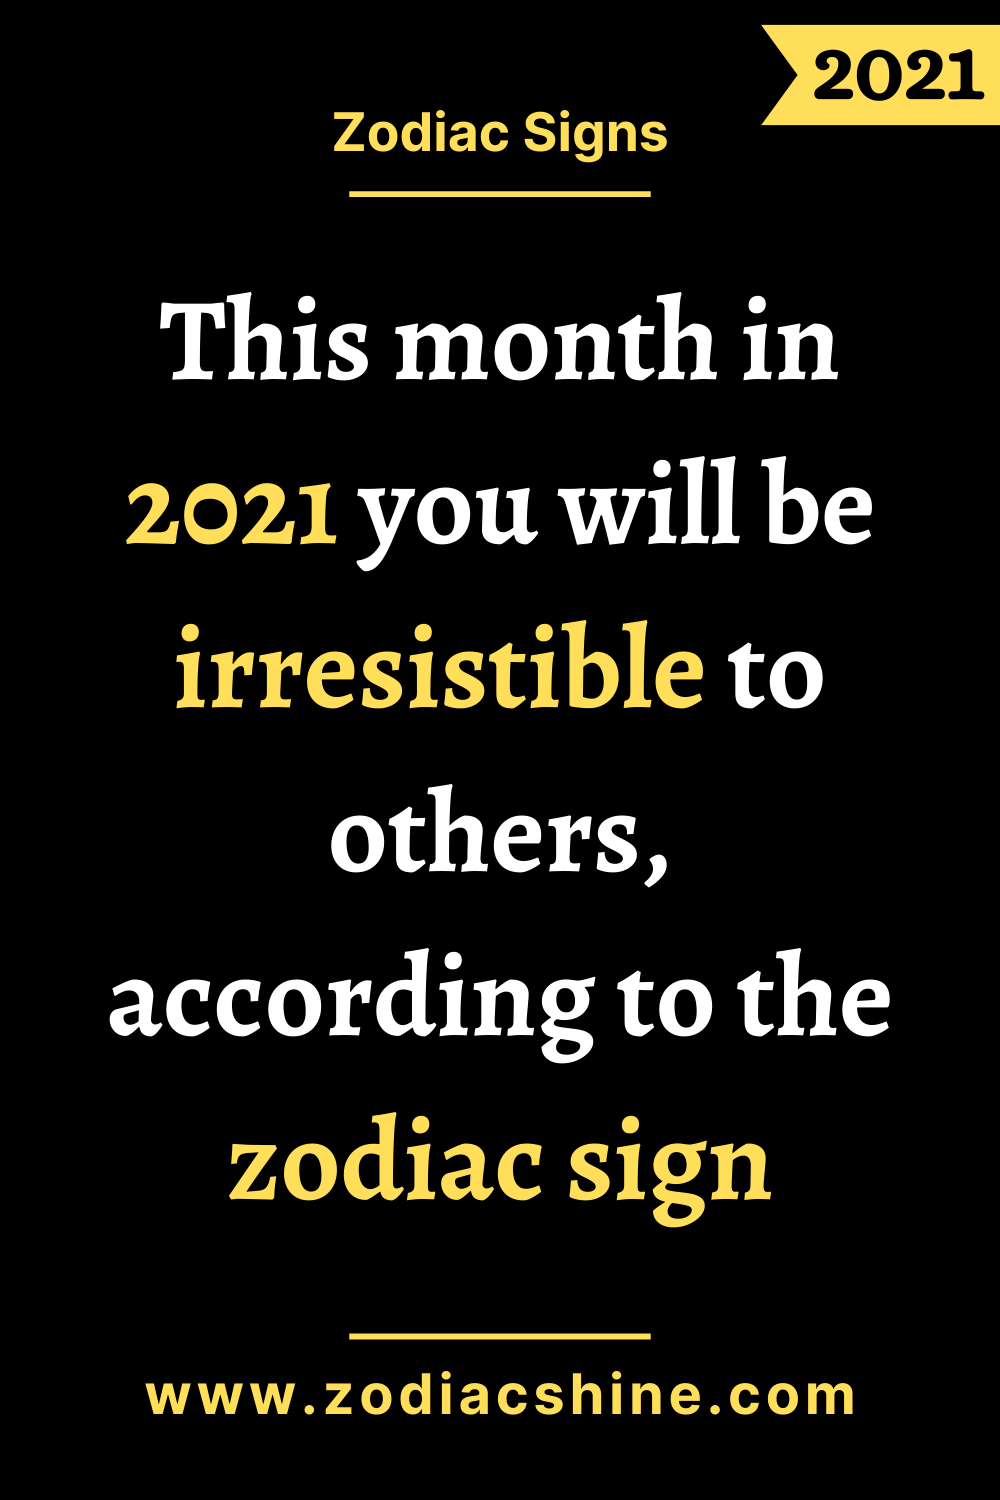 This month in 2021 you will be irresistible to others, according to the zodiac sign